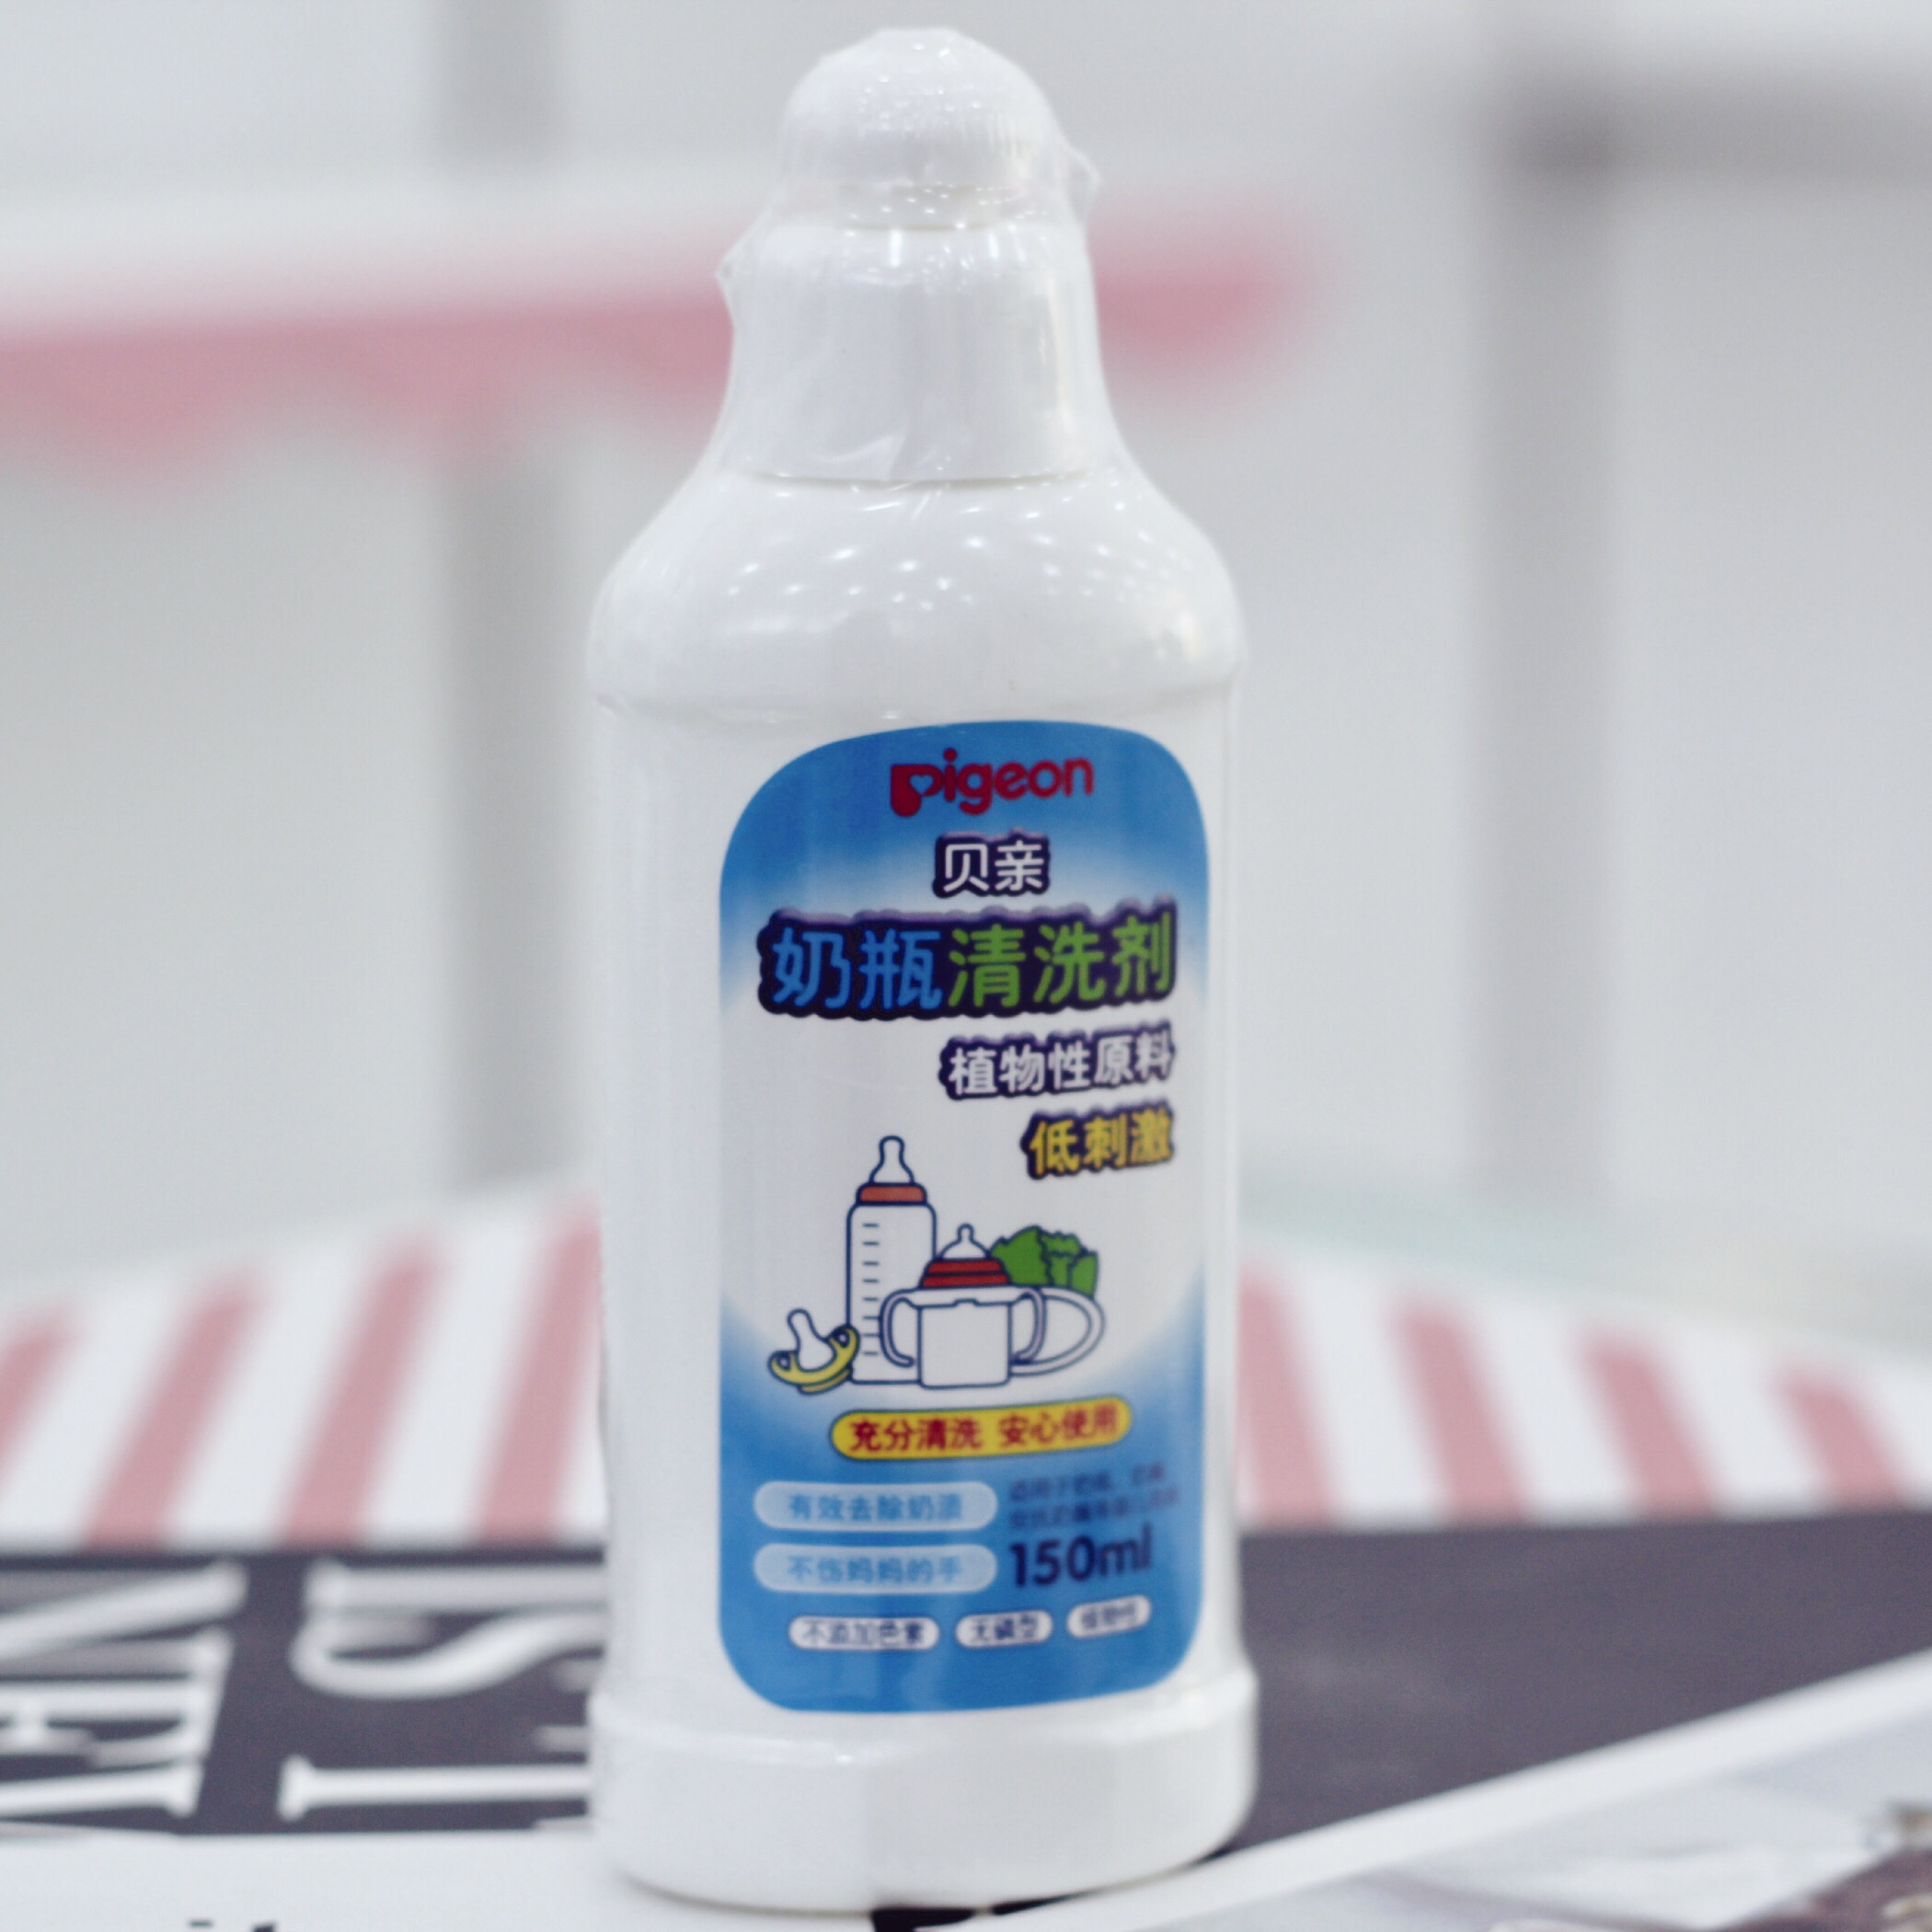 Pigeon bottle cleaning agent, fruit and vegetable cleaning liquid detergent 150ml